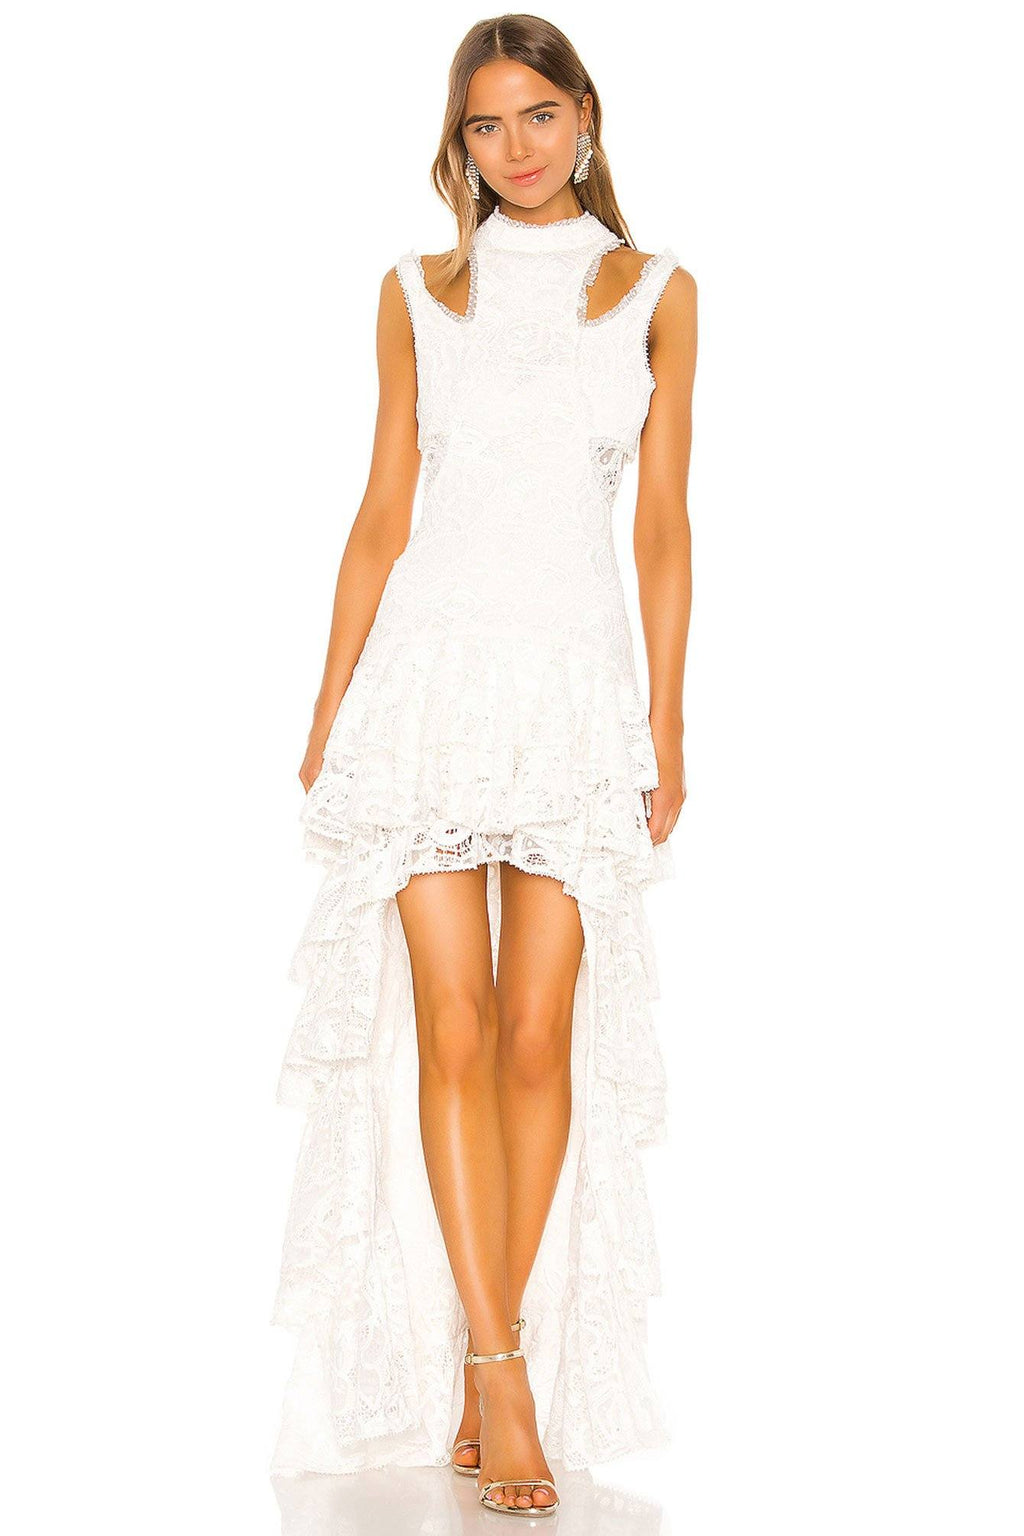 ALEXIS | Varenna Dress - White